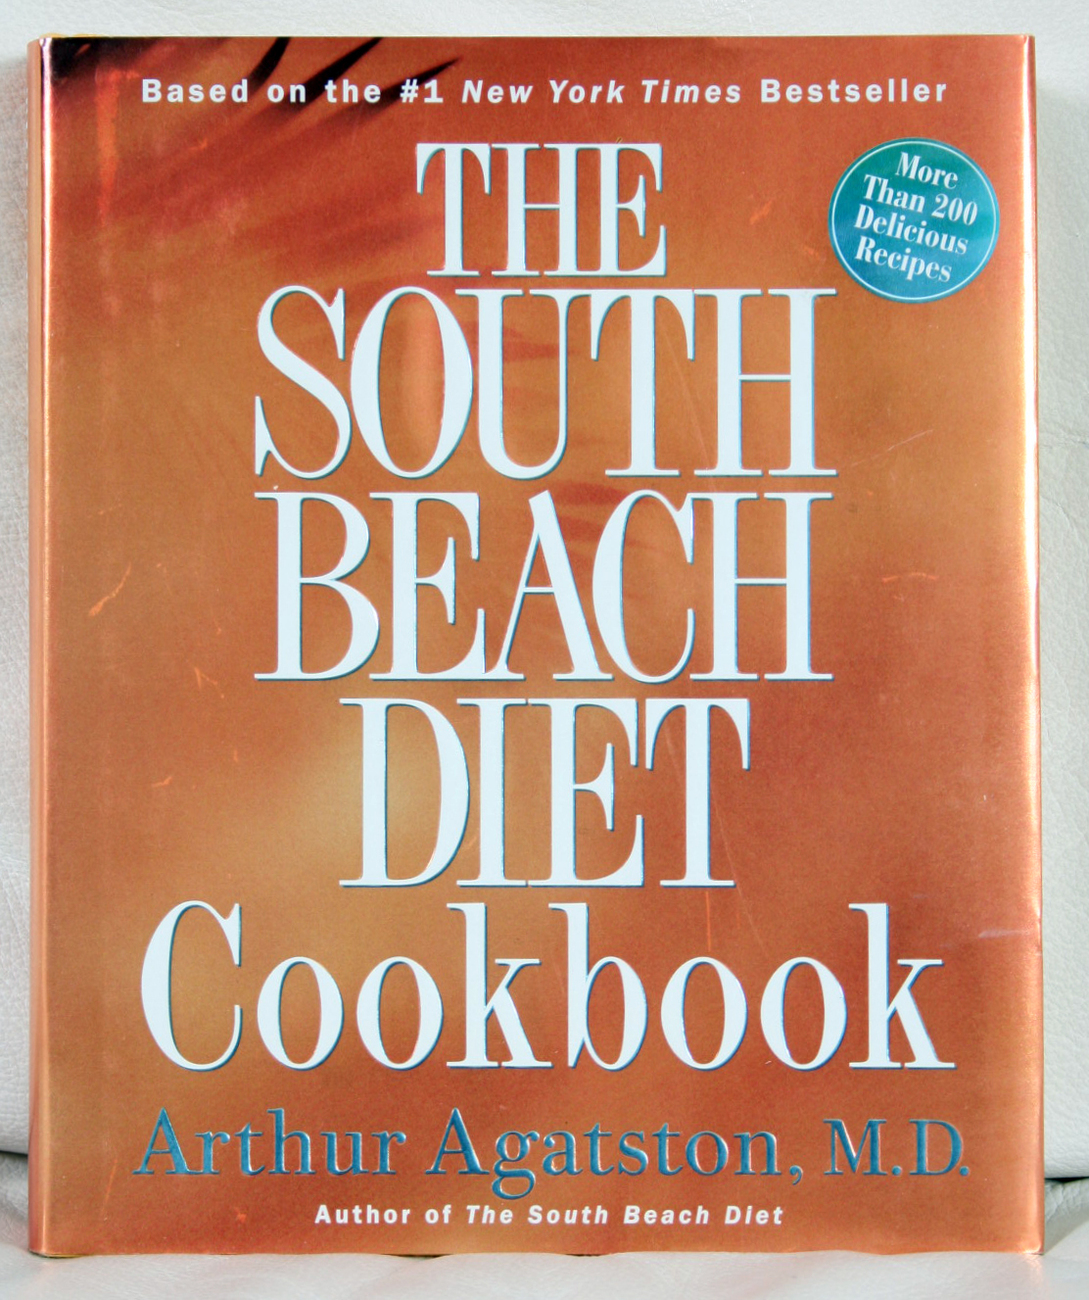 South Beach Diet Cookbook by Dr. Arthur Agatston